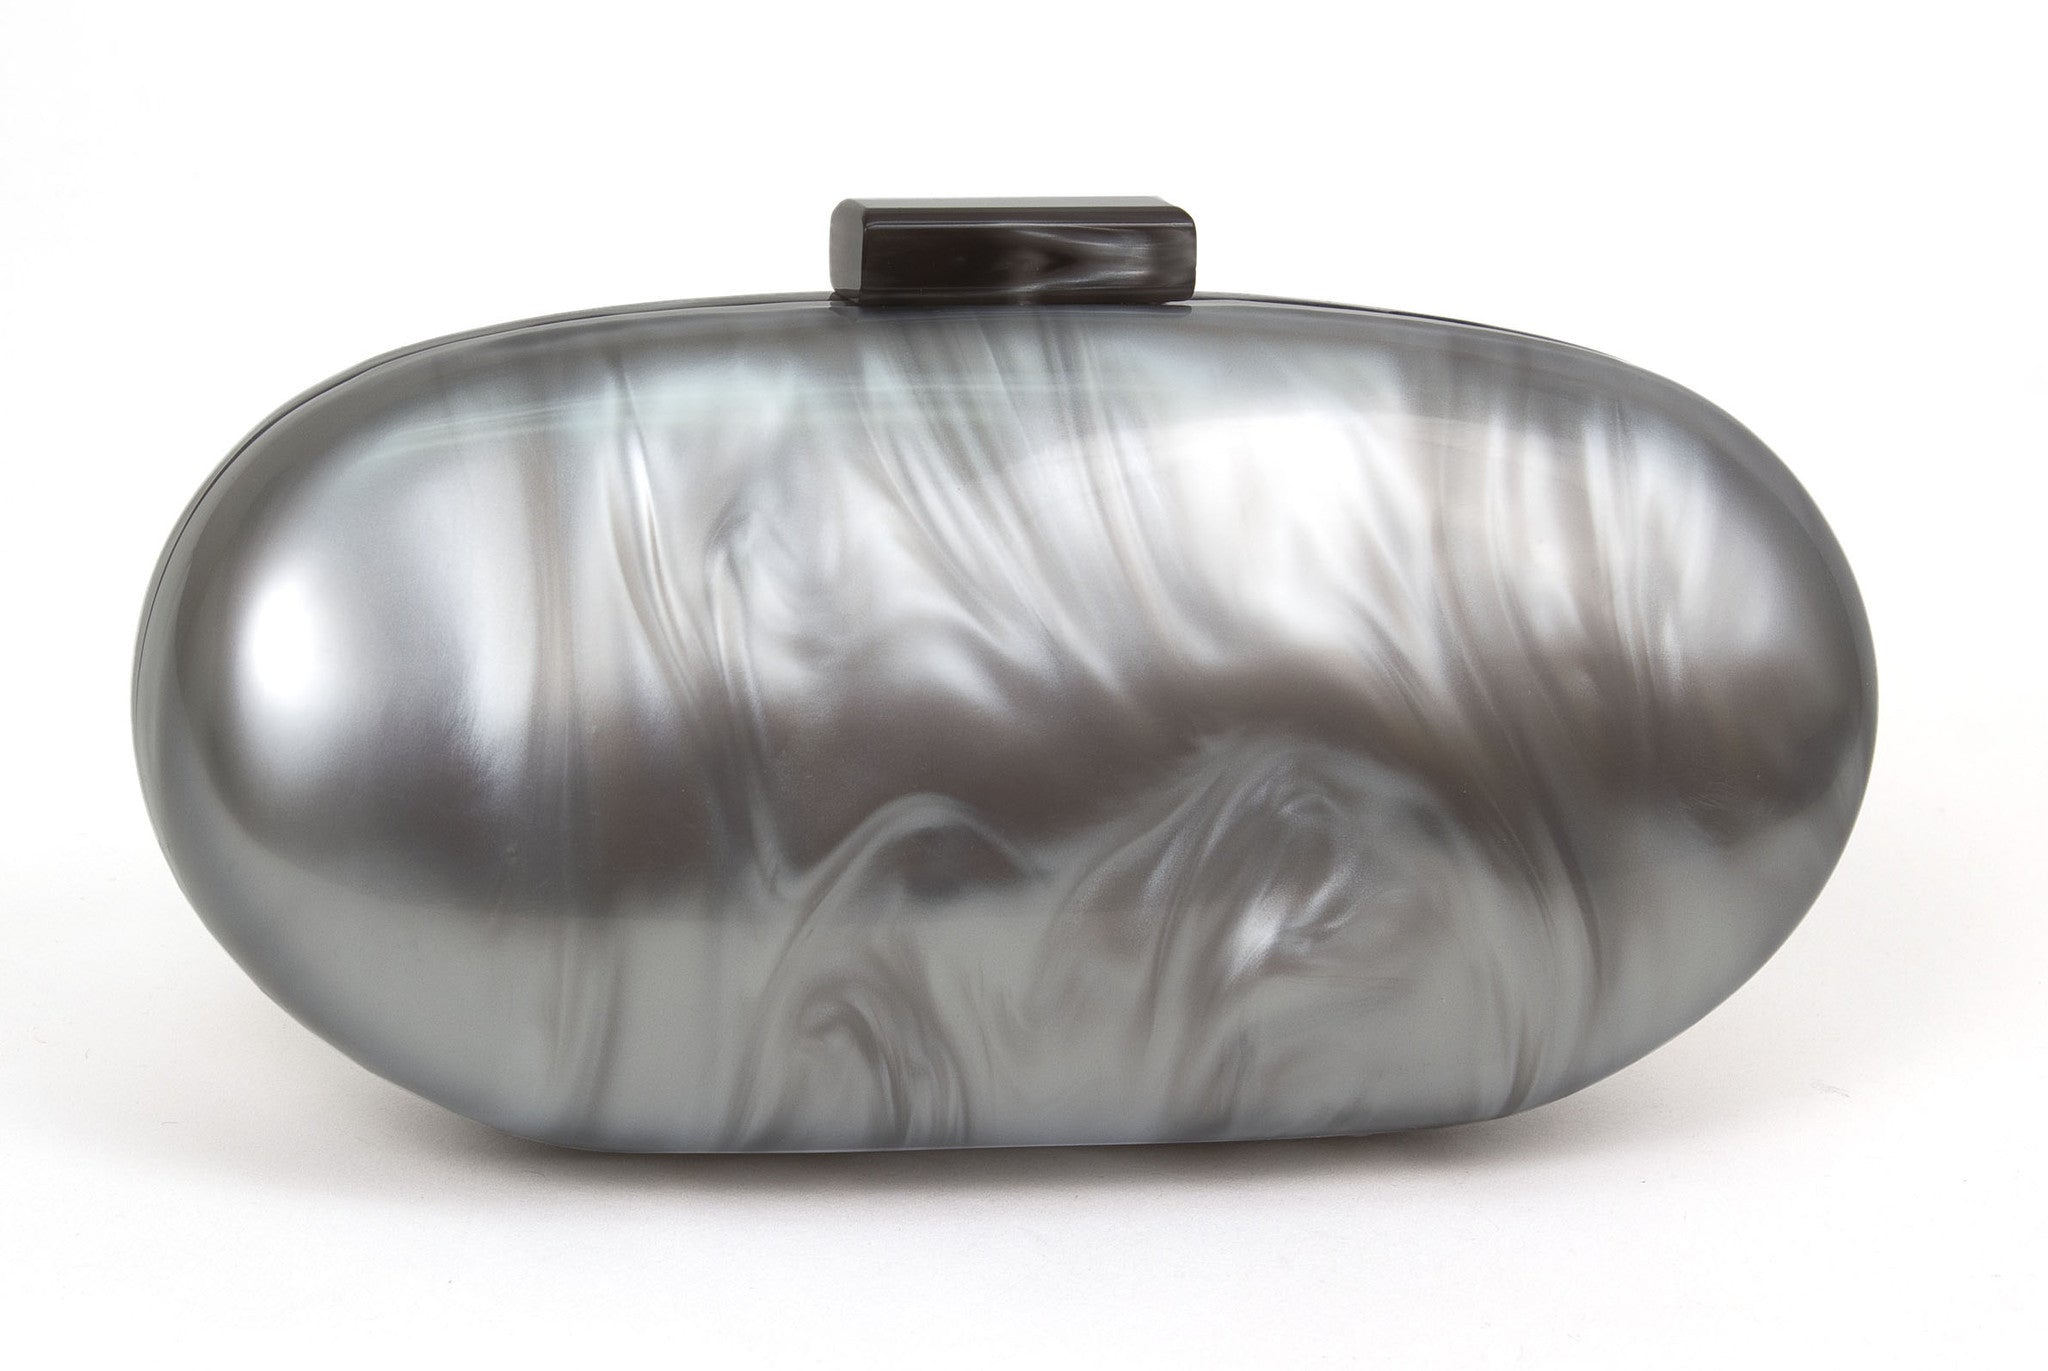 Pearl Oval Lucite Clutch Evening Handbag - Just Jamie